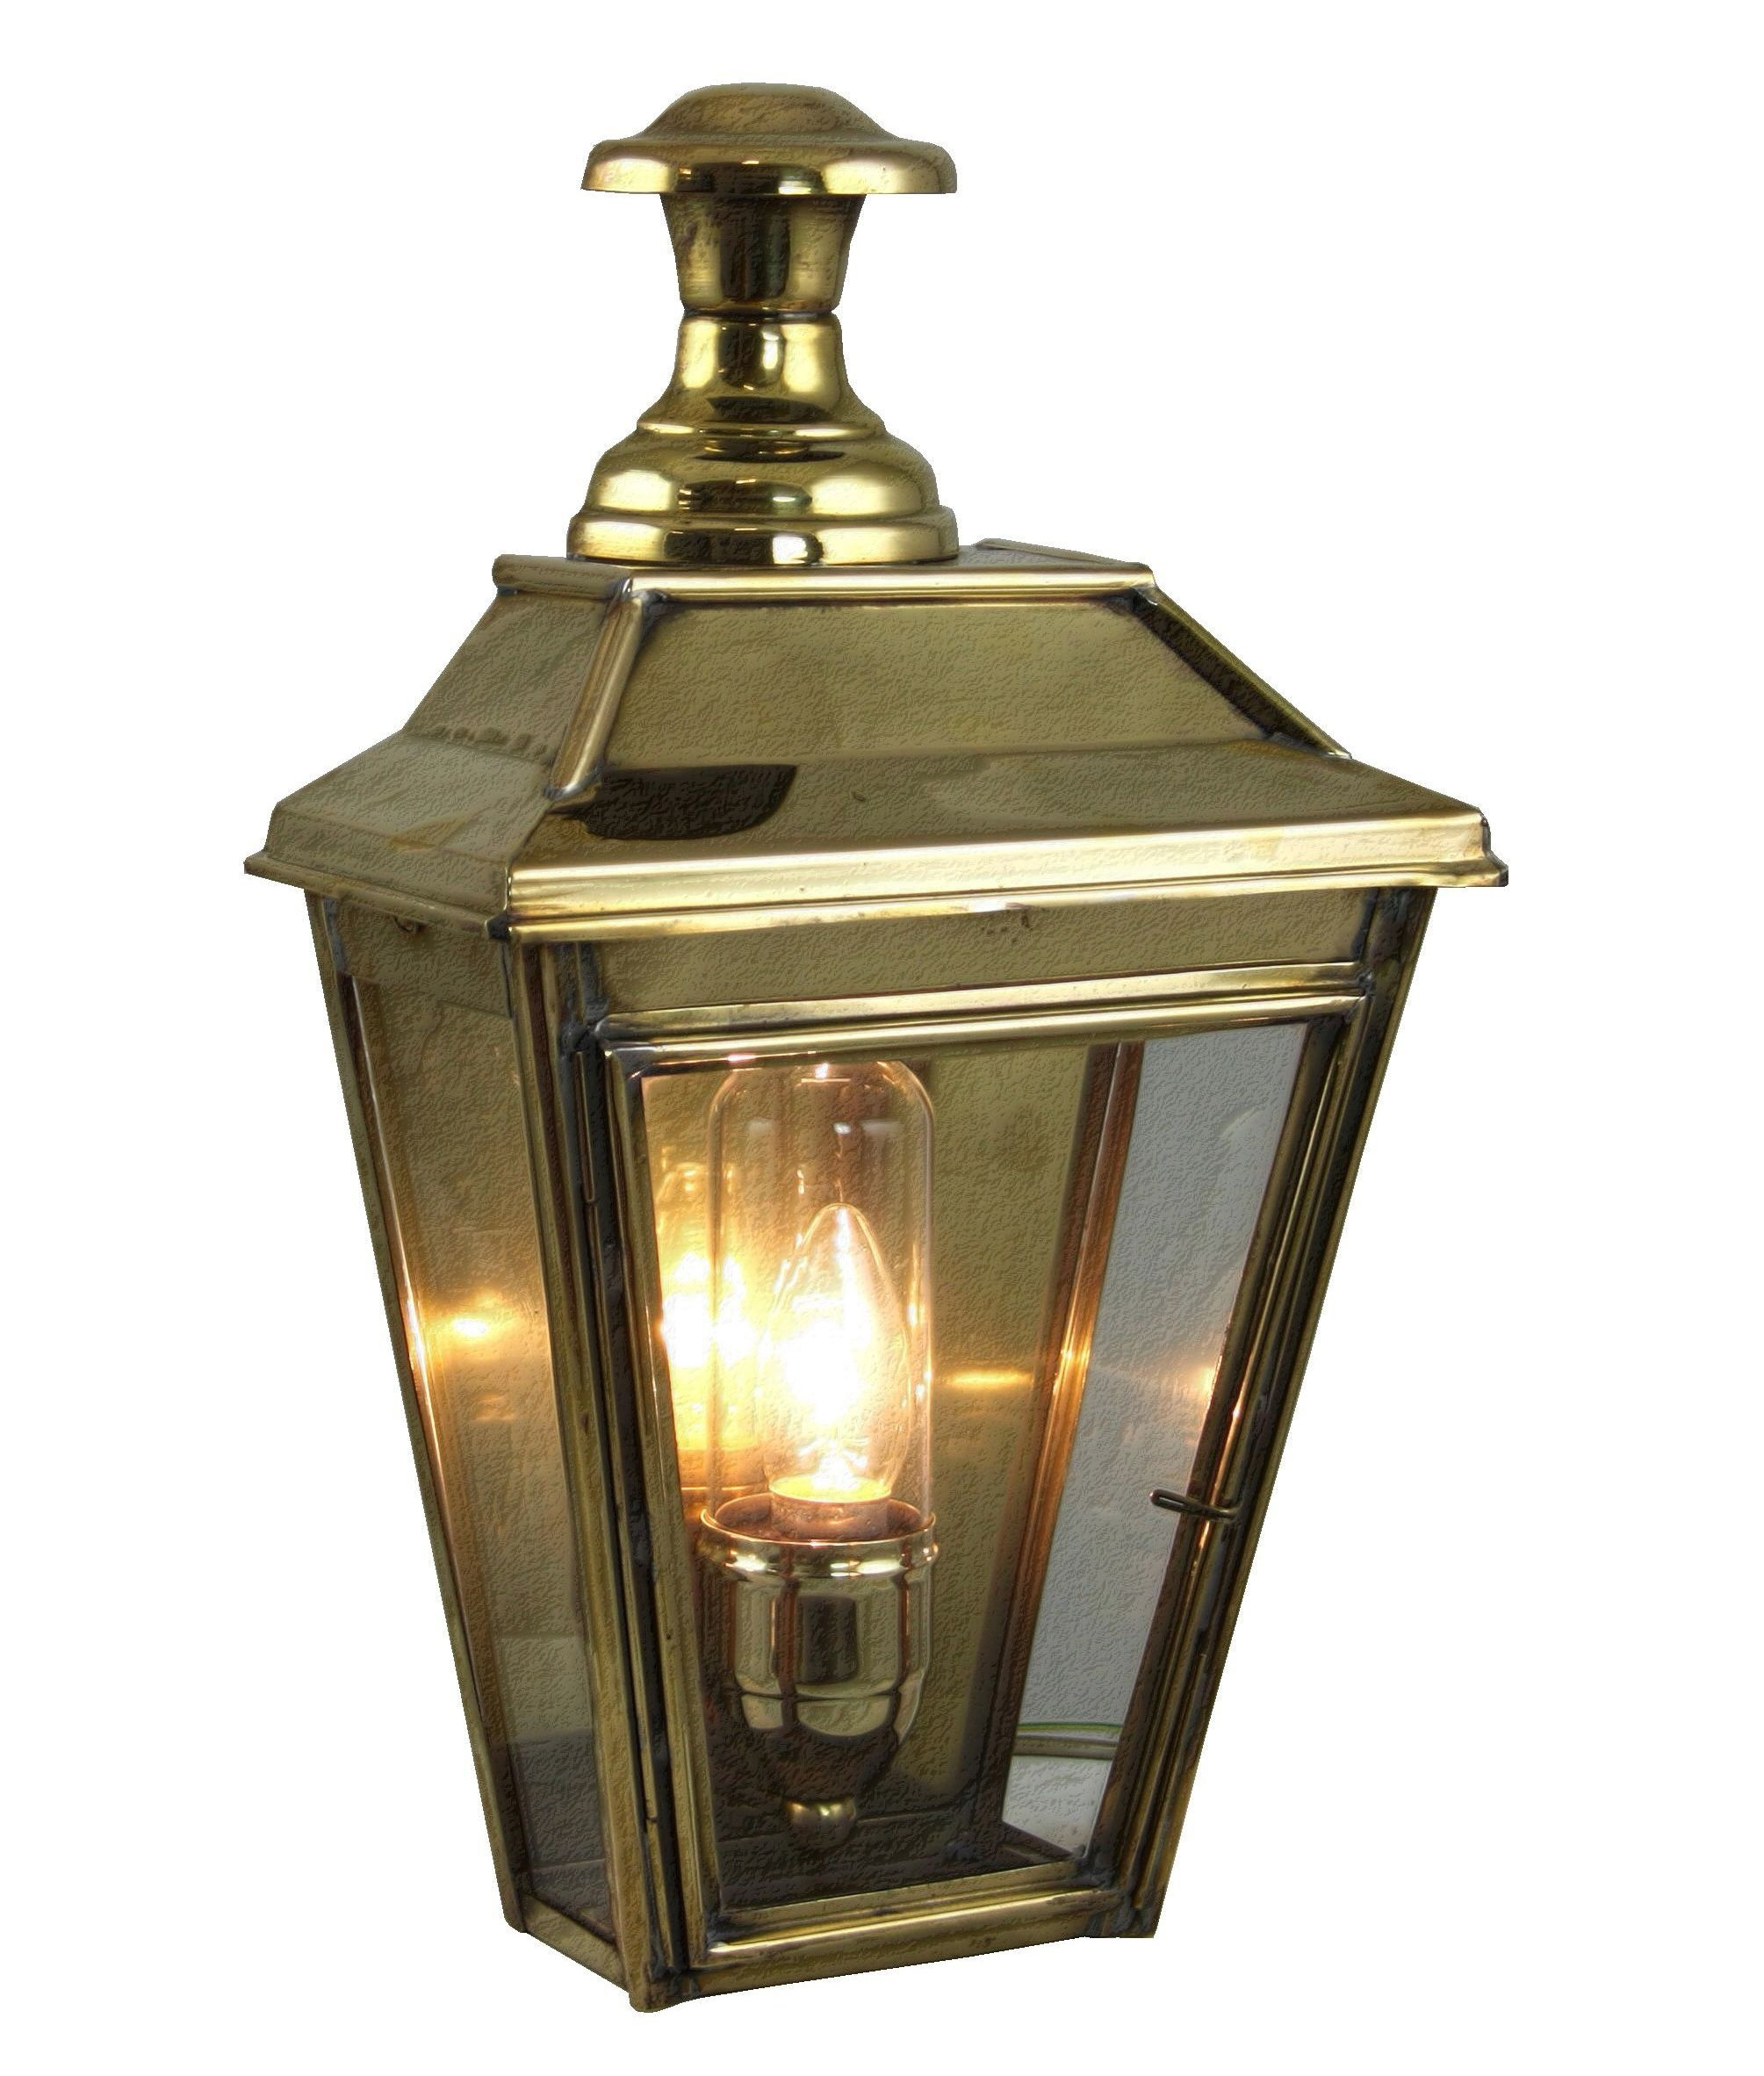 Exterior Flush Wall Lantern Ip44 Rated